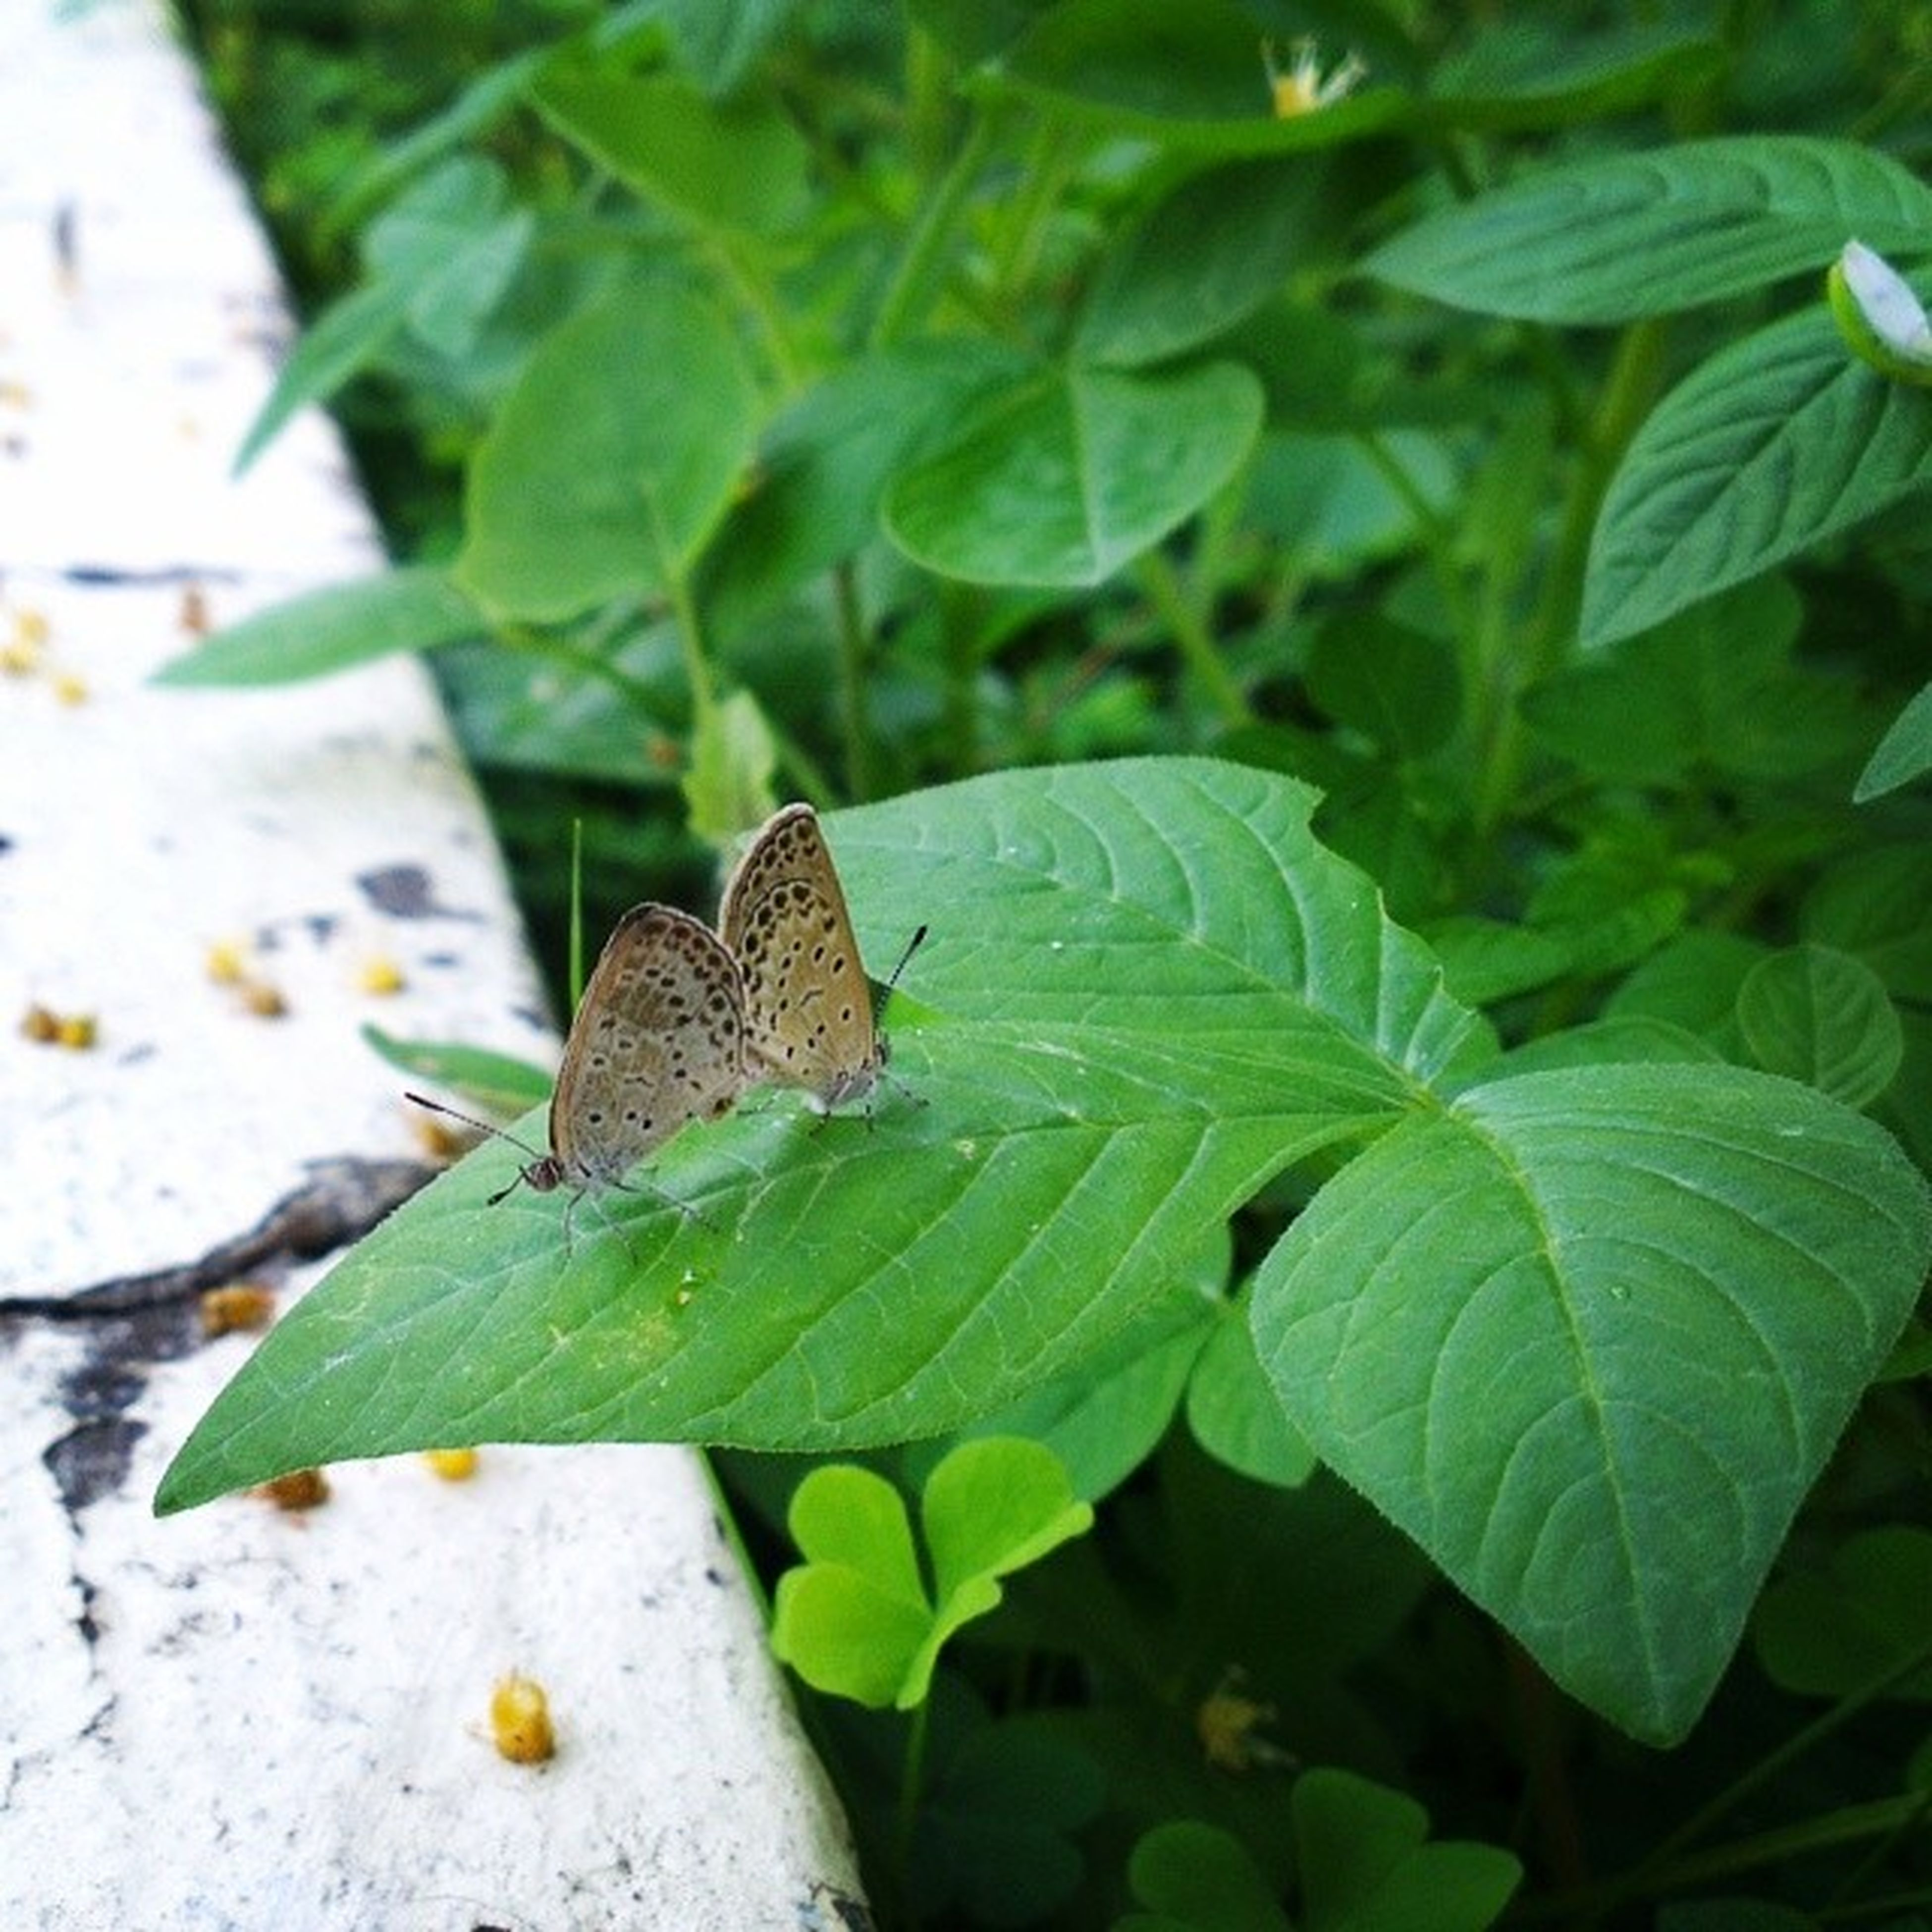 one animal, leaf, animal themes, animals in the wild, wildlife, insect, green color, plant, close-up, nature, focus on foreground, butterfly - insect, full length, high angle view, animal antenna, outdoors, day, butterfly, no people, selective focus